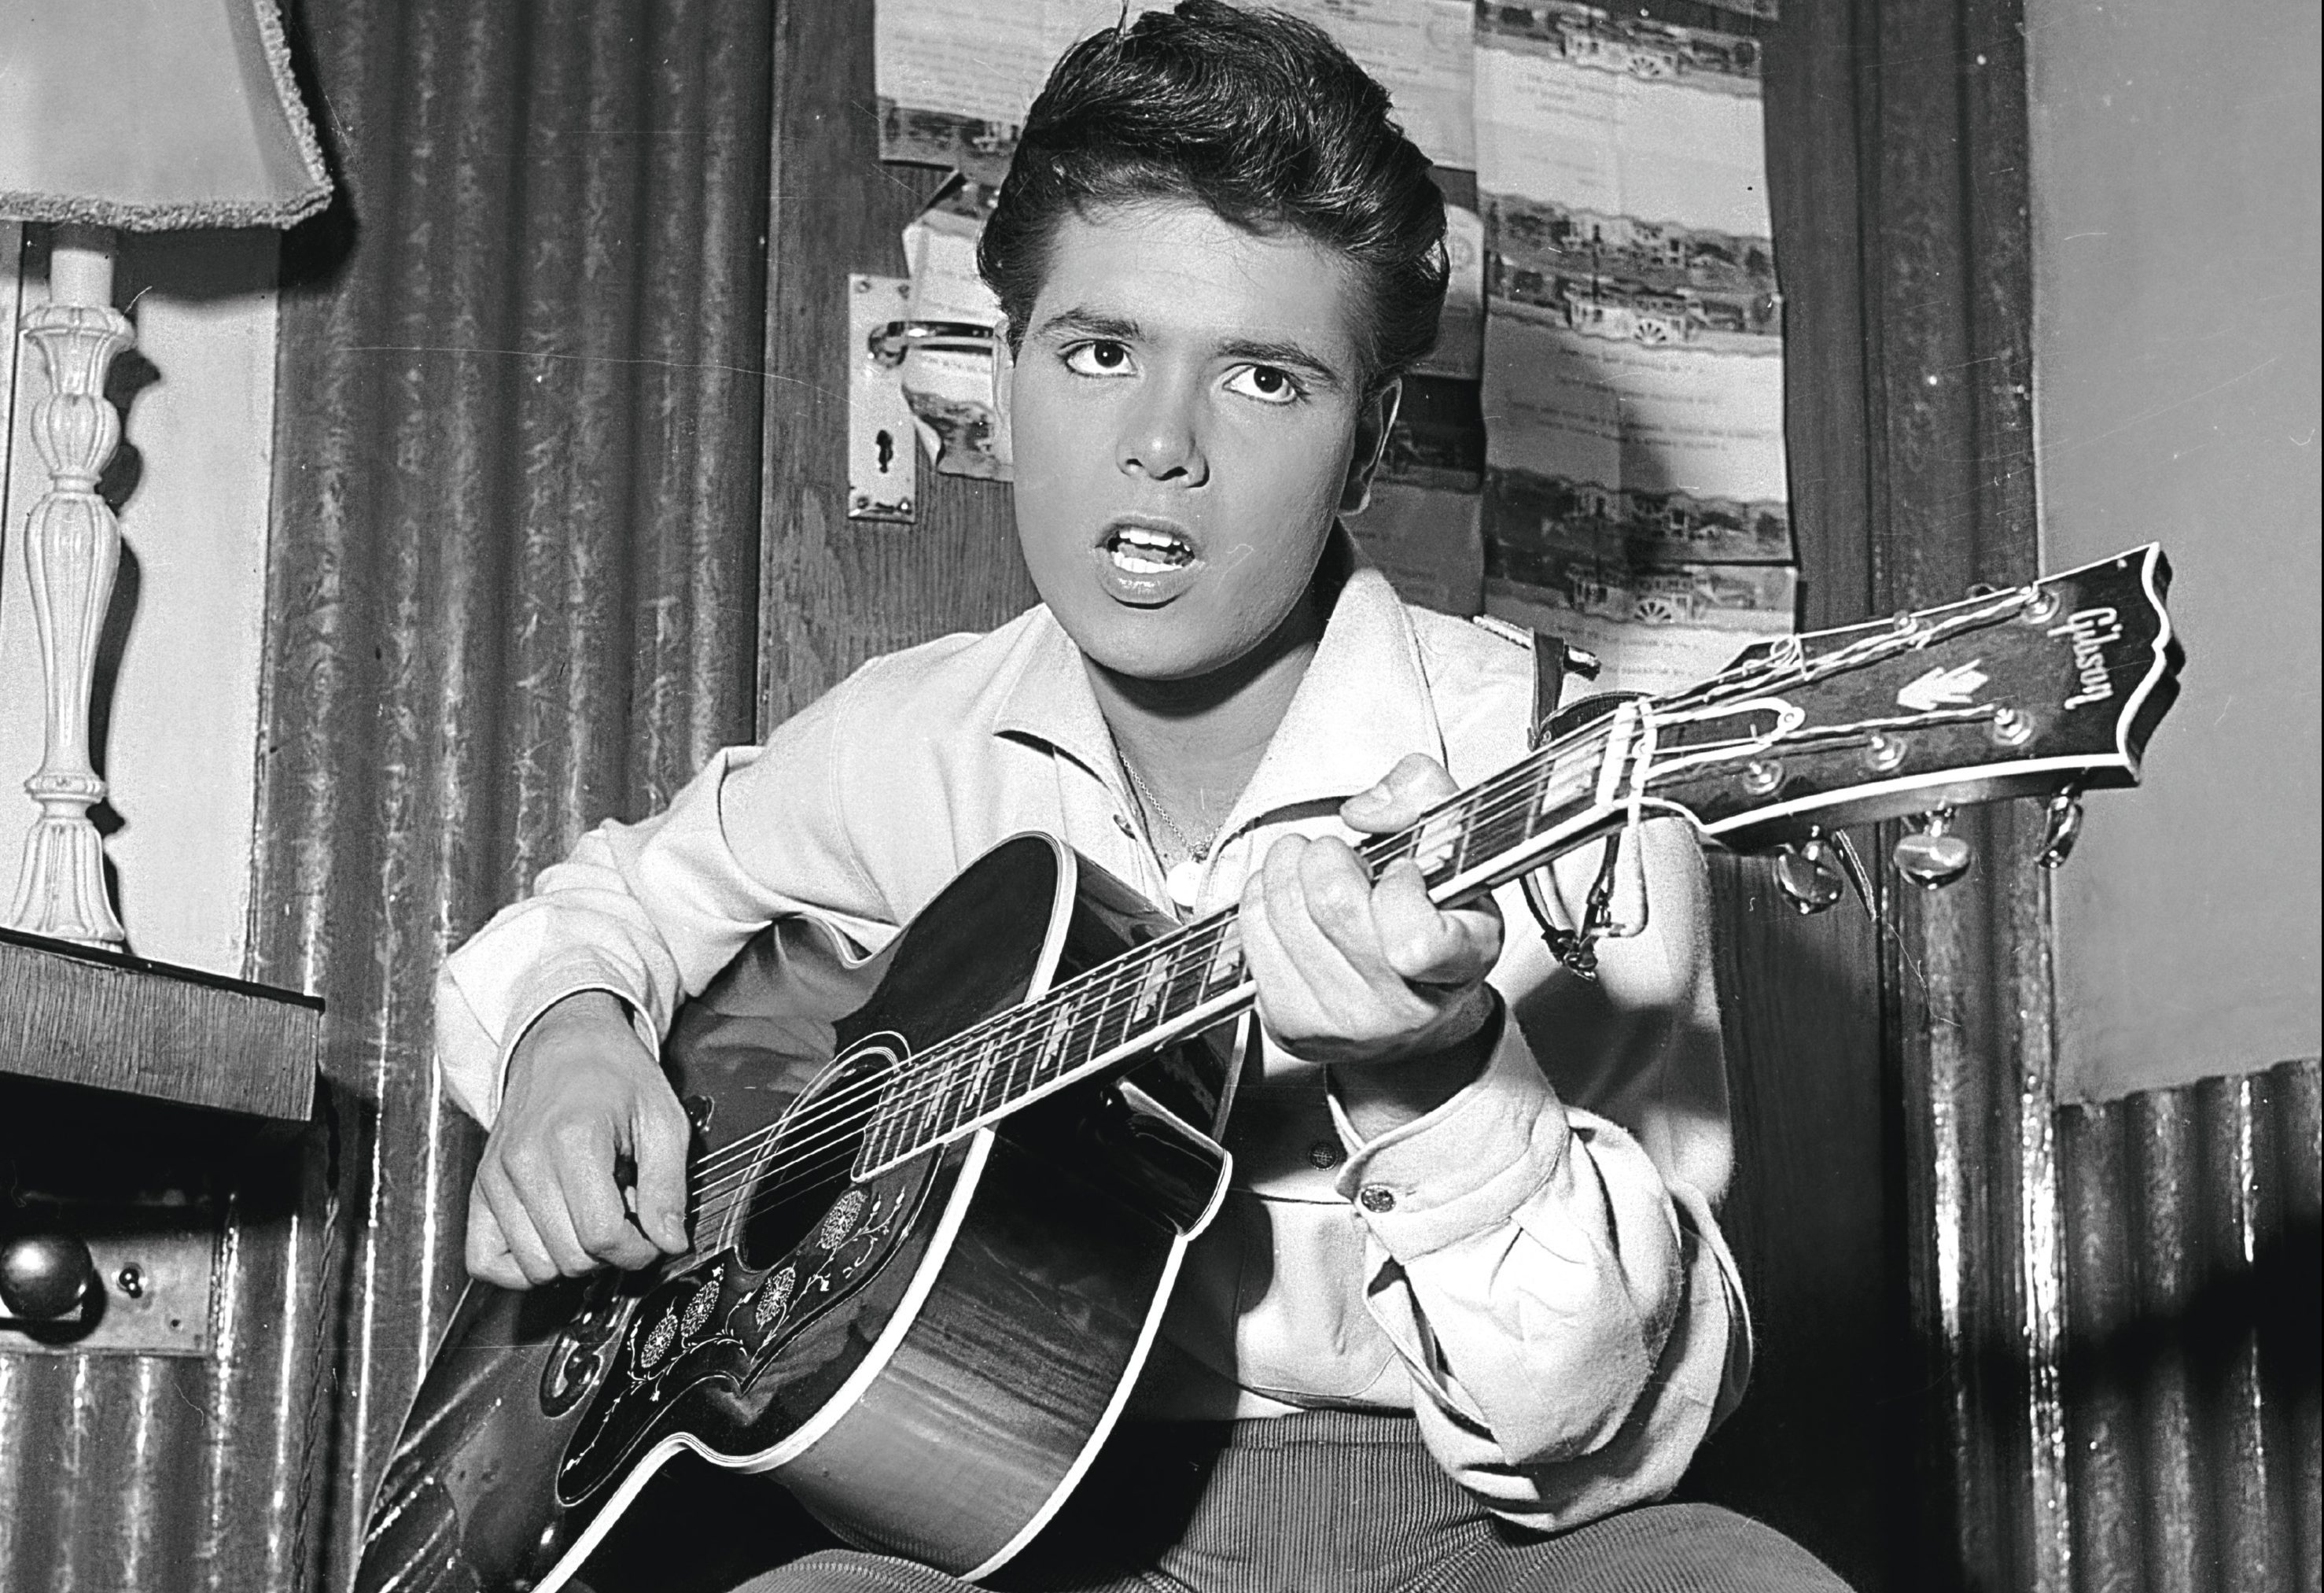 Cliff Richard strums a tune on his trusty guitar before a concert, 1960 (John Pratt/Keystone Features/Getty Images)